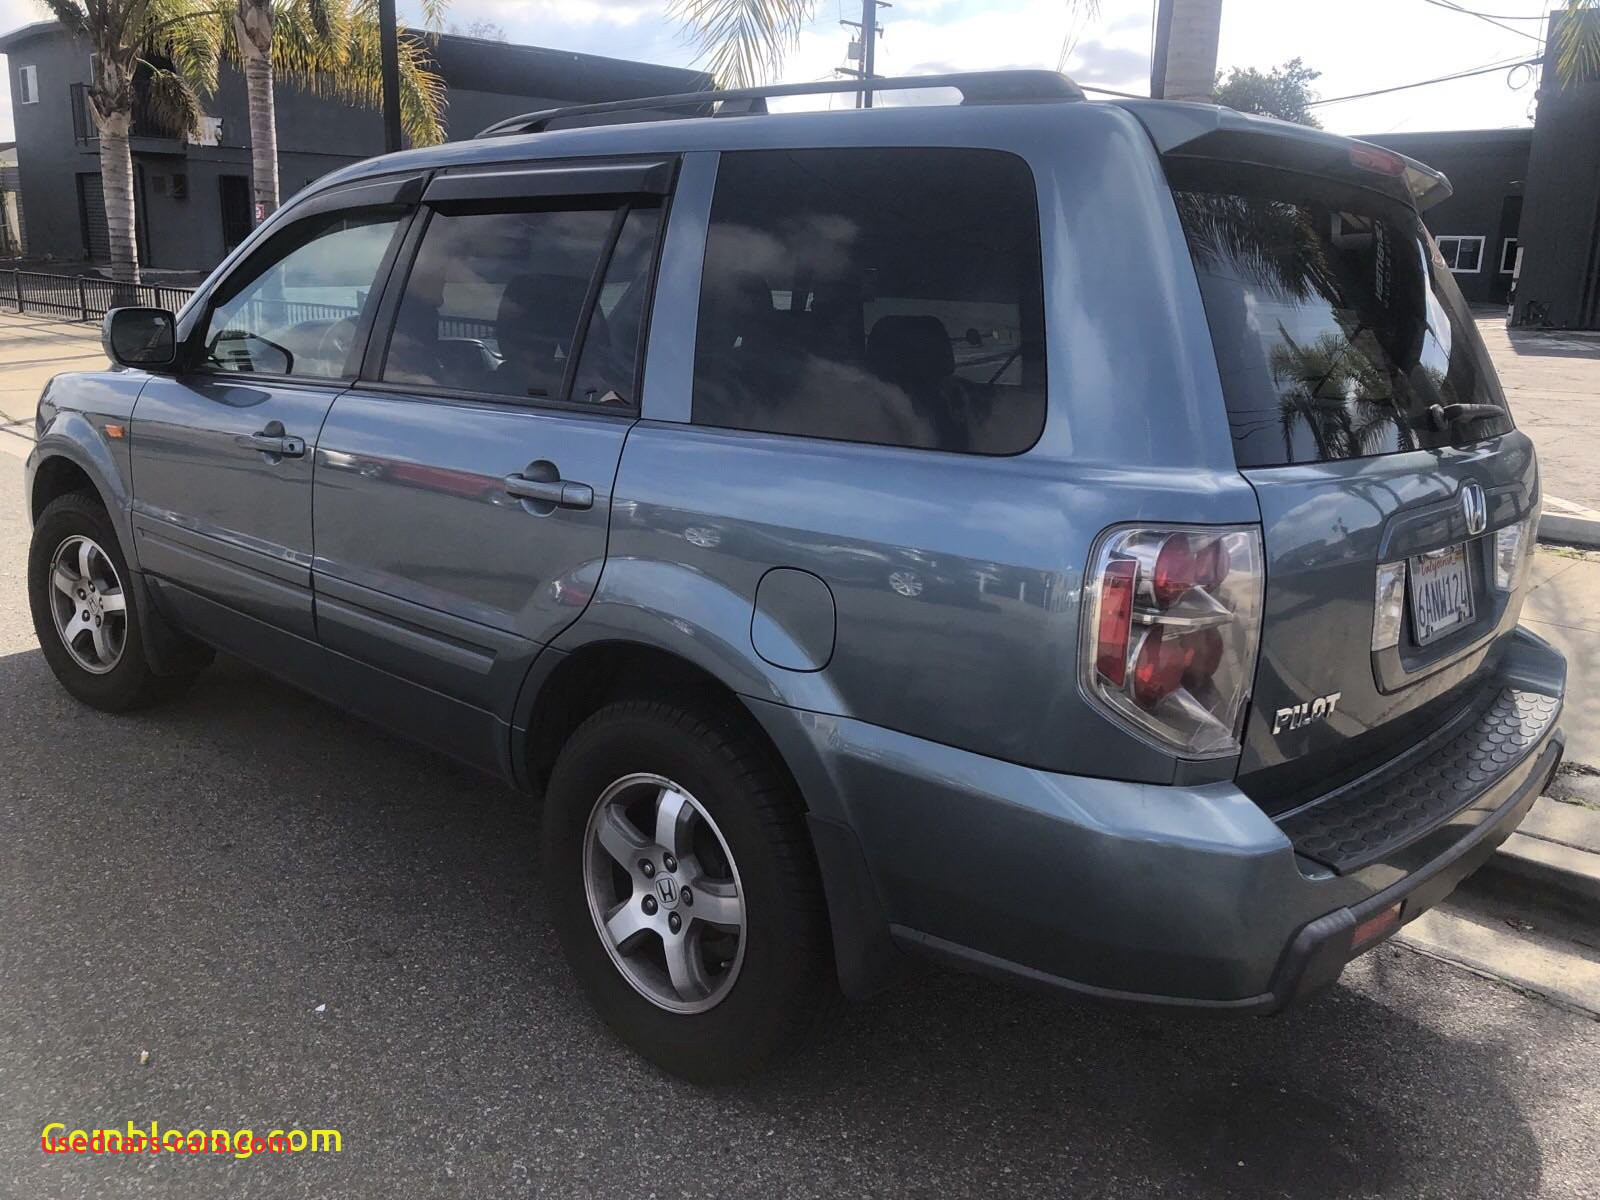 Used Cars for Sale $10000 by Owner Inspirational Fresh Cars for Sale by Owner Near Me Under